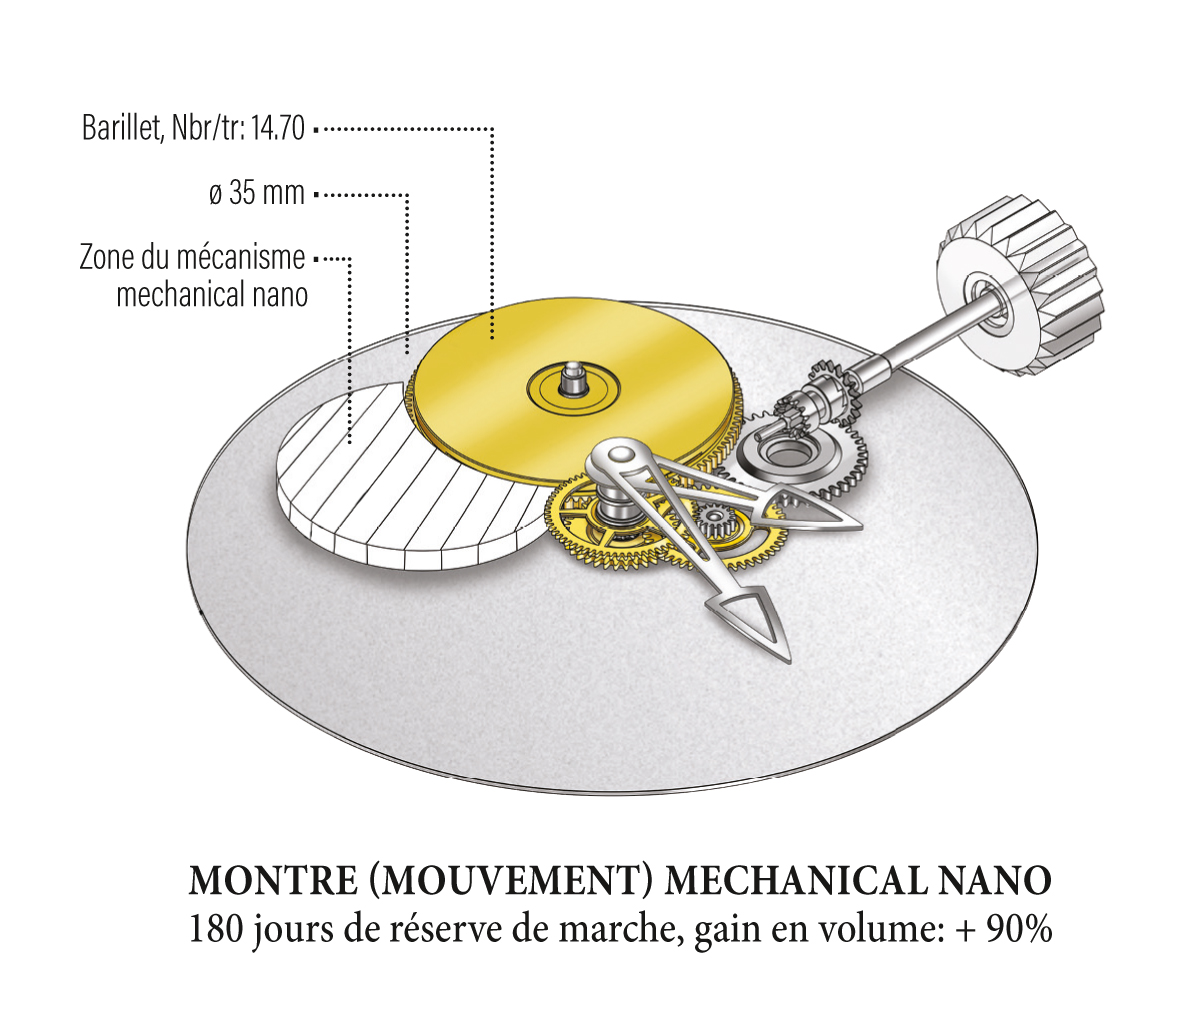 MECHANICAL NANO WATCH MOVEMENT - 180 days power reserve, volume gain + 90%